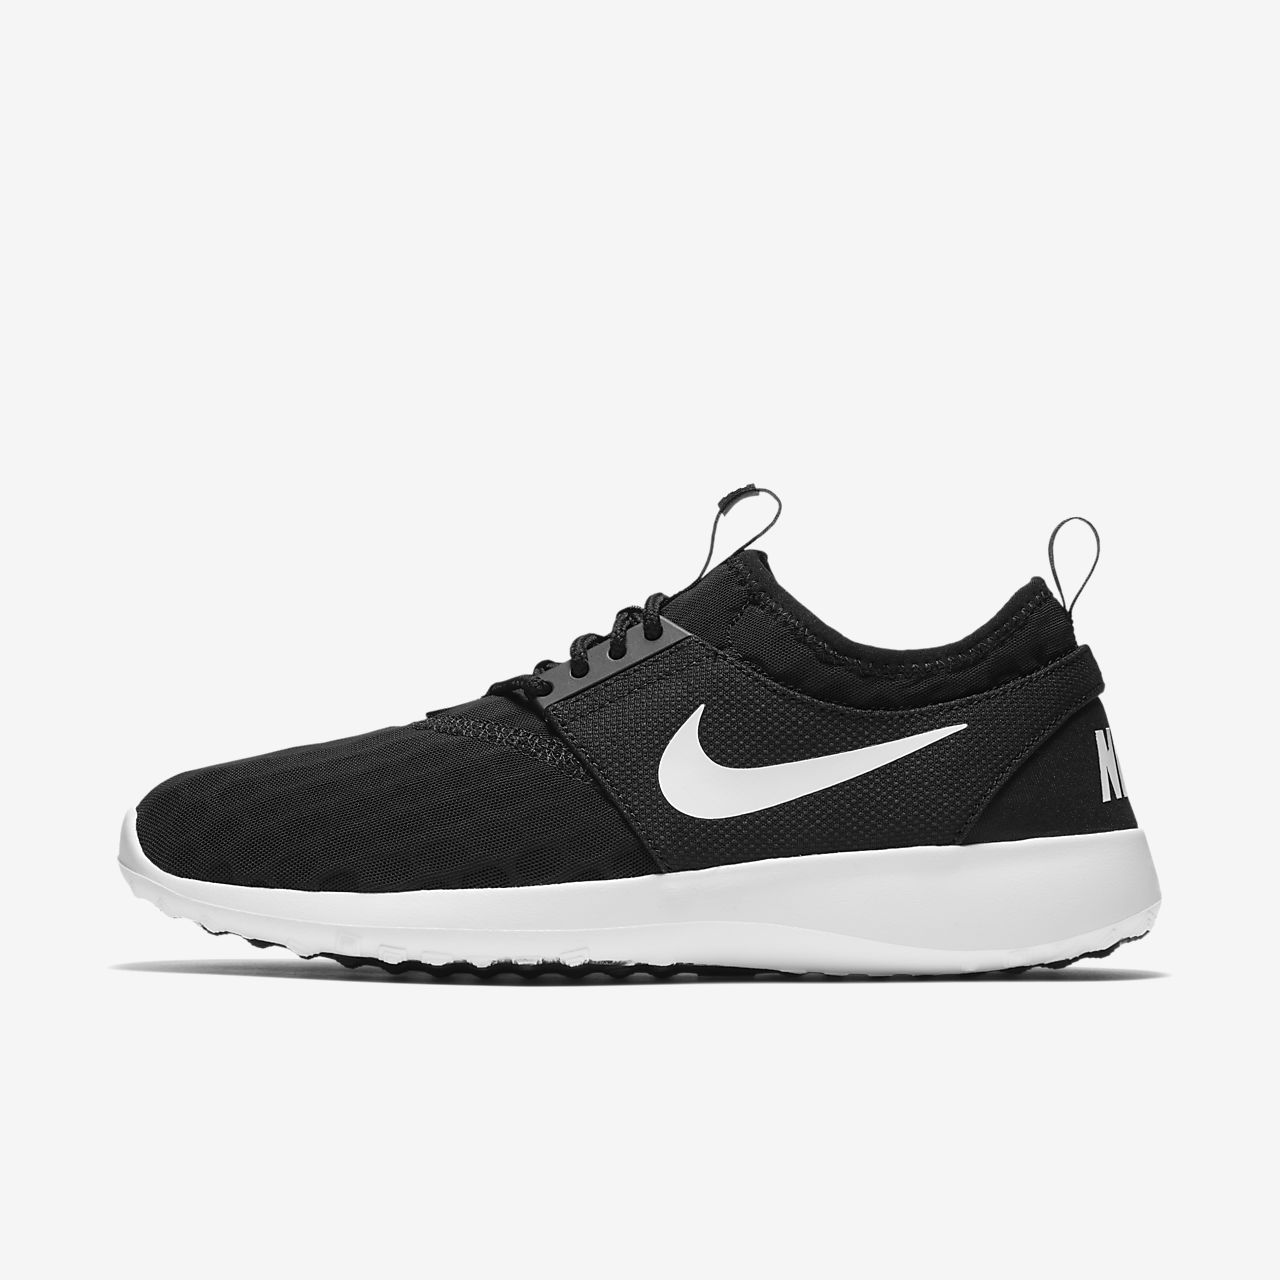 1d63a203c Low Resolution Nike Juvenate Women s Shoe Nike Juvenate Women s Shoe